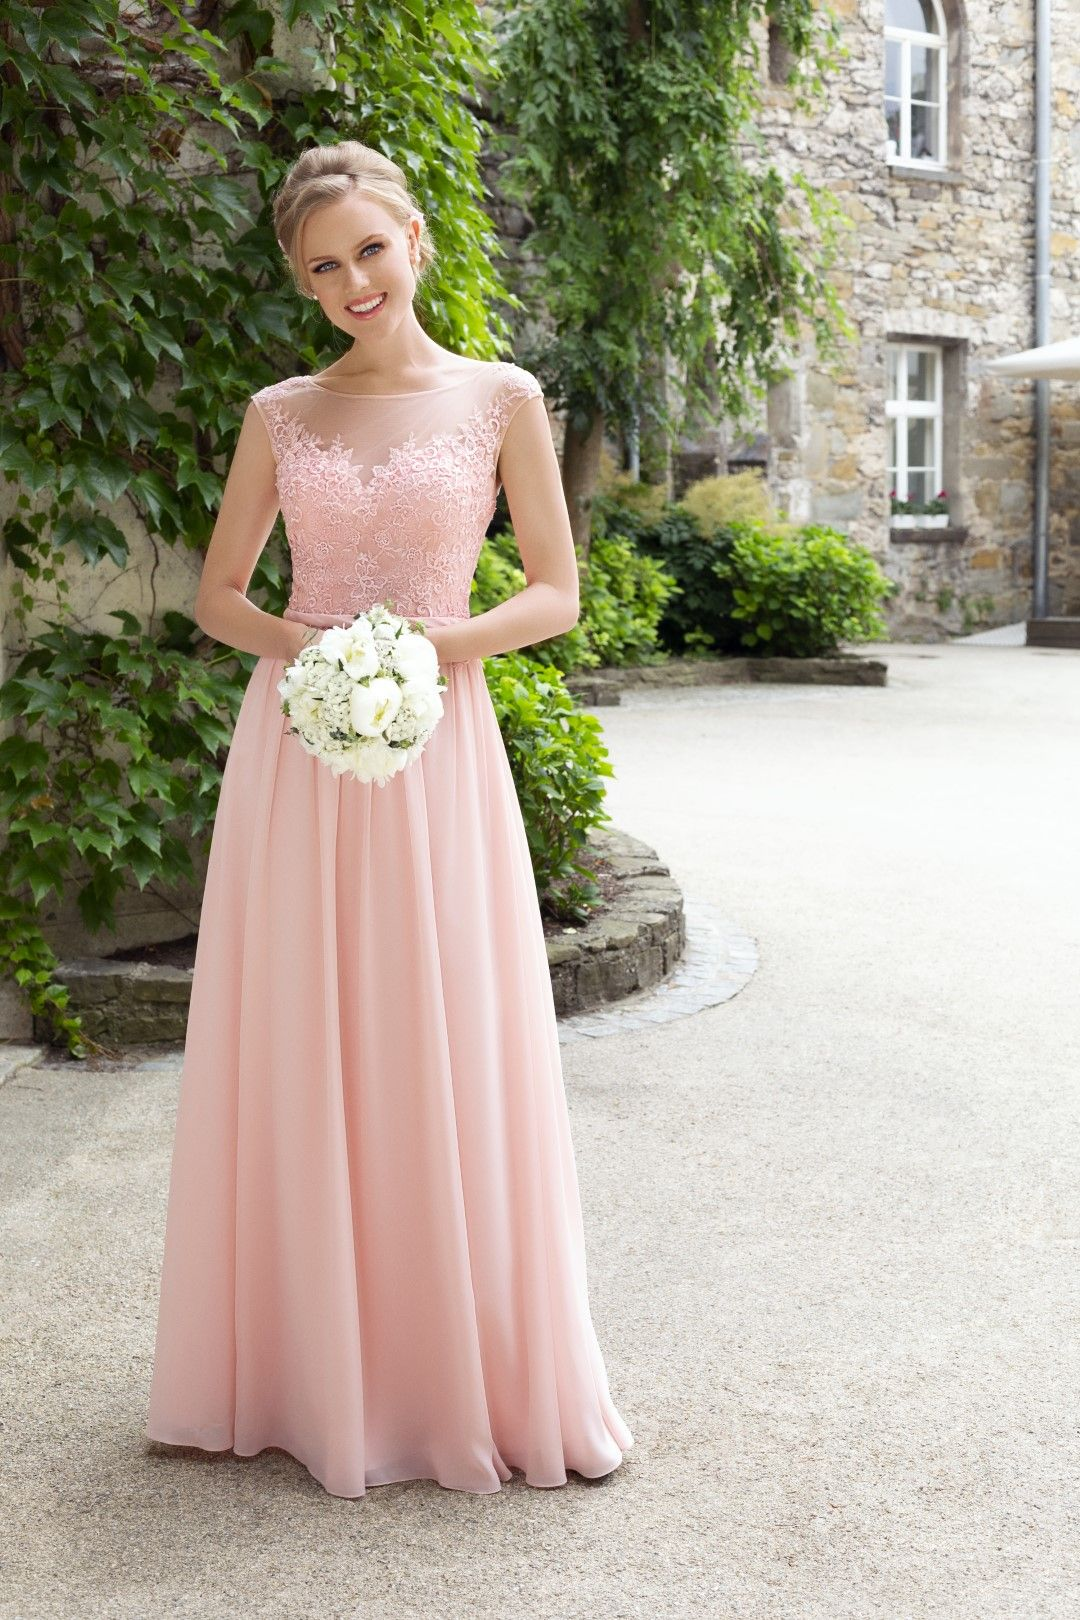 brautjungfernkleid in rose | ballkleid, brautjungfernkleid